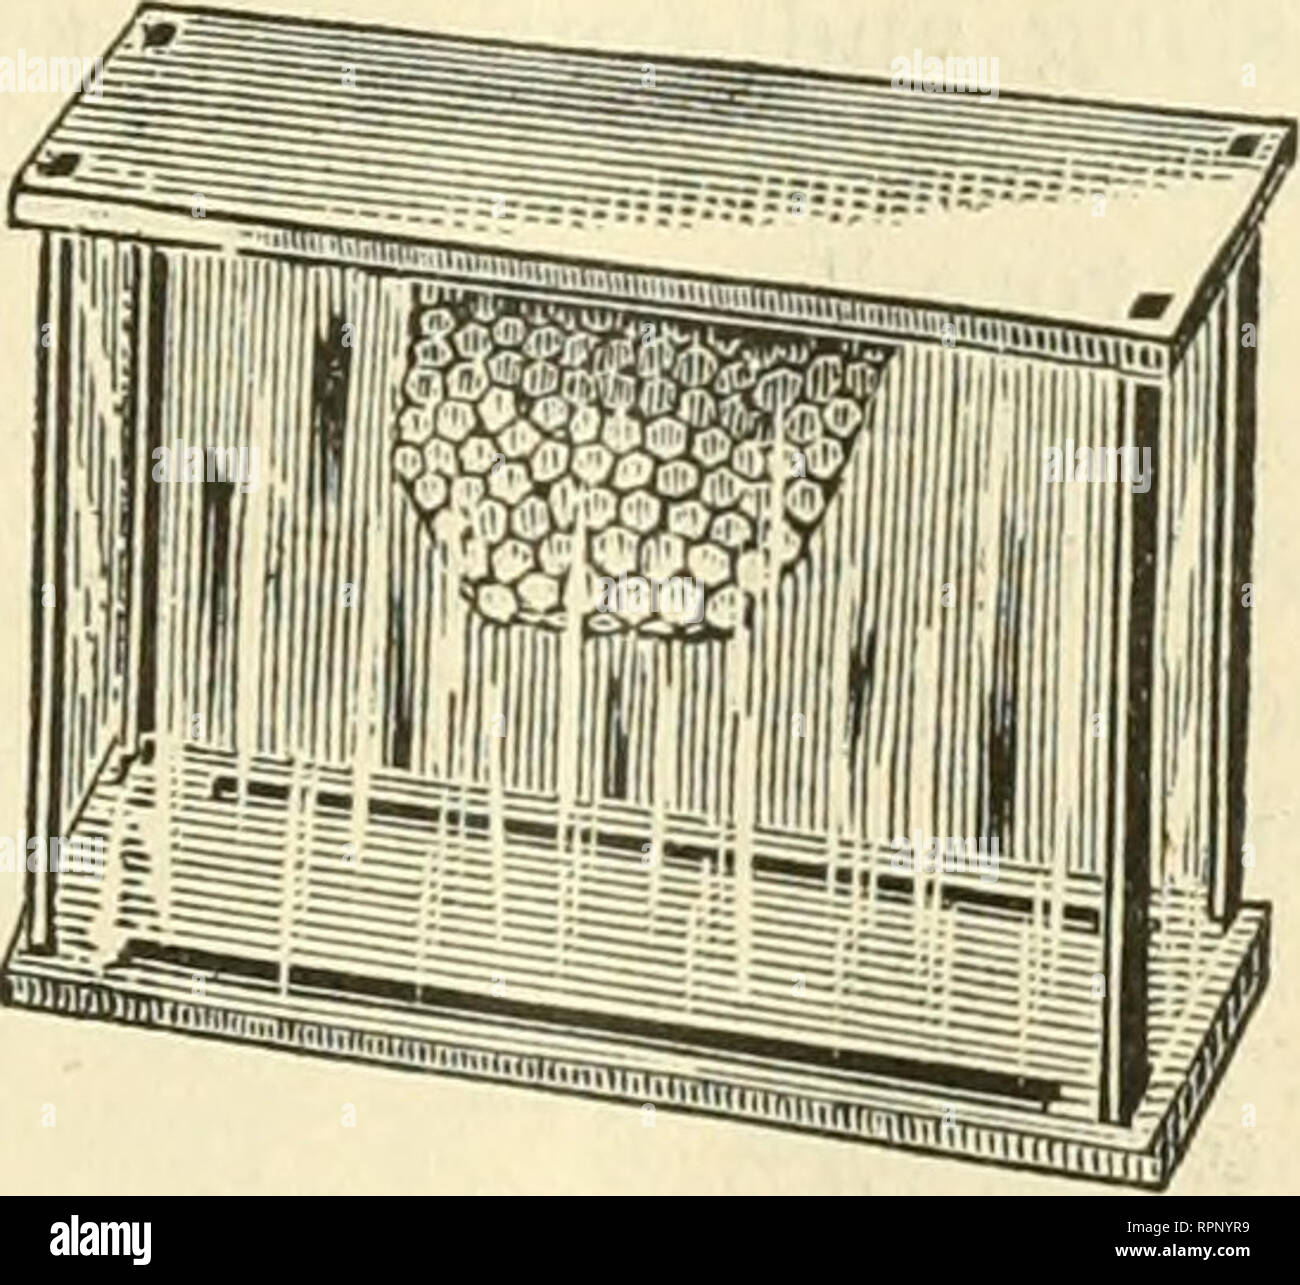 . American bee journal. Bee culture; Bees. AMEKICAN HIVE. American, and Langstroth hives; all metal extractor; bee feeder; the new smoker. J. H. Nellis—A sample showing a new way of fastening foundation in frames, viz., by timiing up the edgei inch, thus: ], and then tacking on a small strip of pine, driving the brads through the strip and upi)er edge of the foundation into the top bar.. ISHAM HONEY BOX, C. F. Muth—All-metal honey ex- tractor, honey jars, Langstroth hives and veils. ' W. A. Schofield—a new, broad-bladed honey knife, with curved handle and point.. Please note that these images  - Stock Image